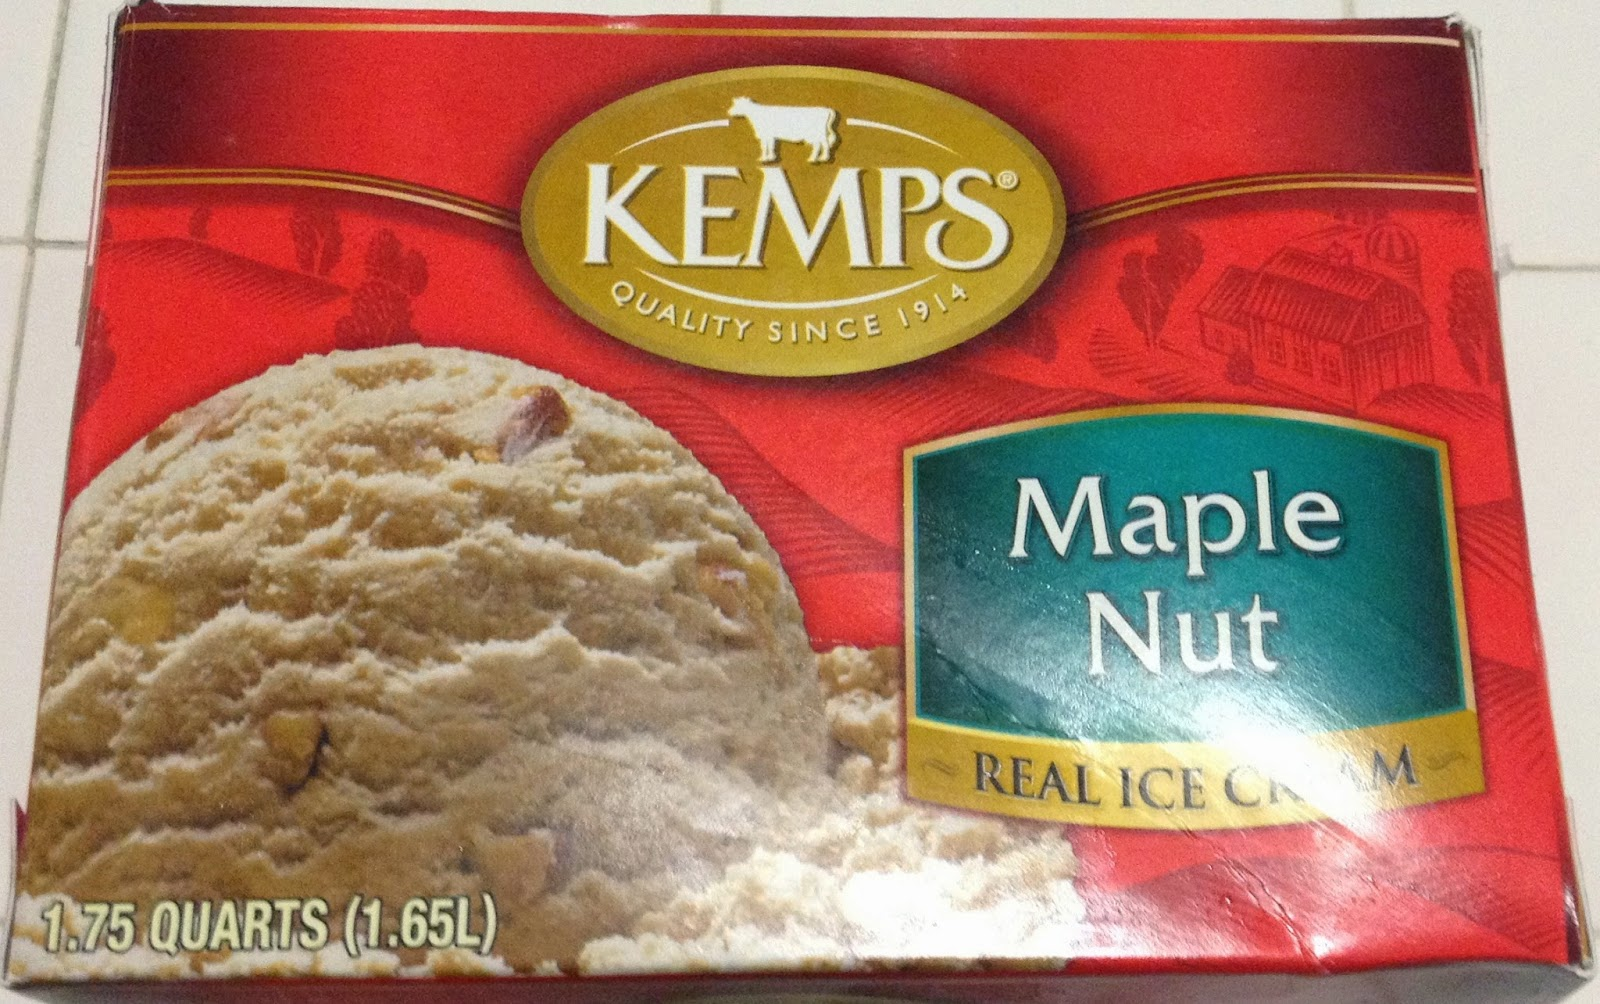 Kemps Maple Nut Ice Cream